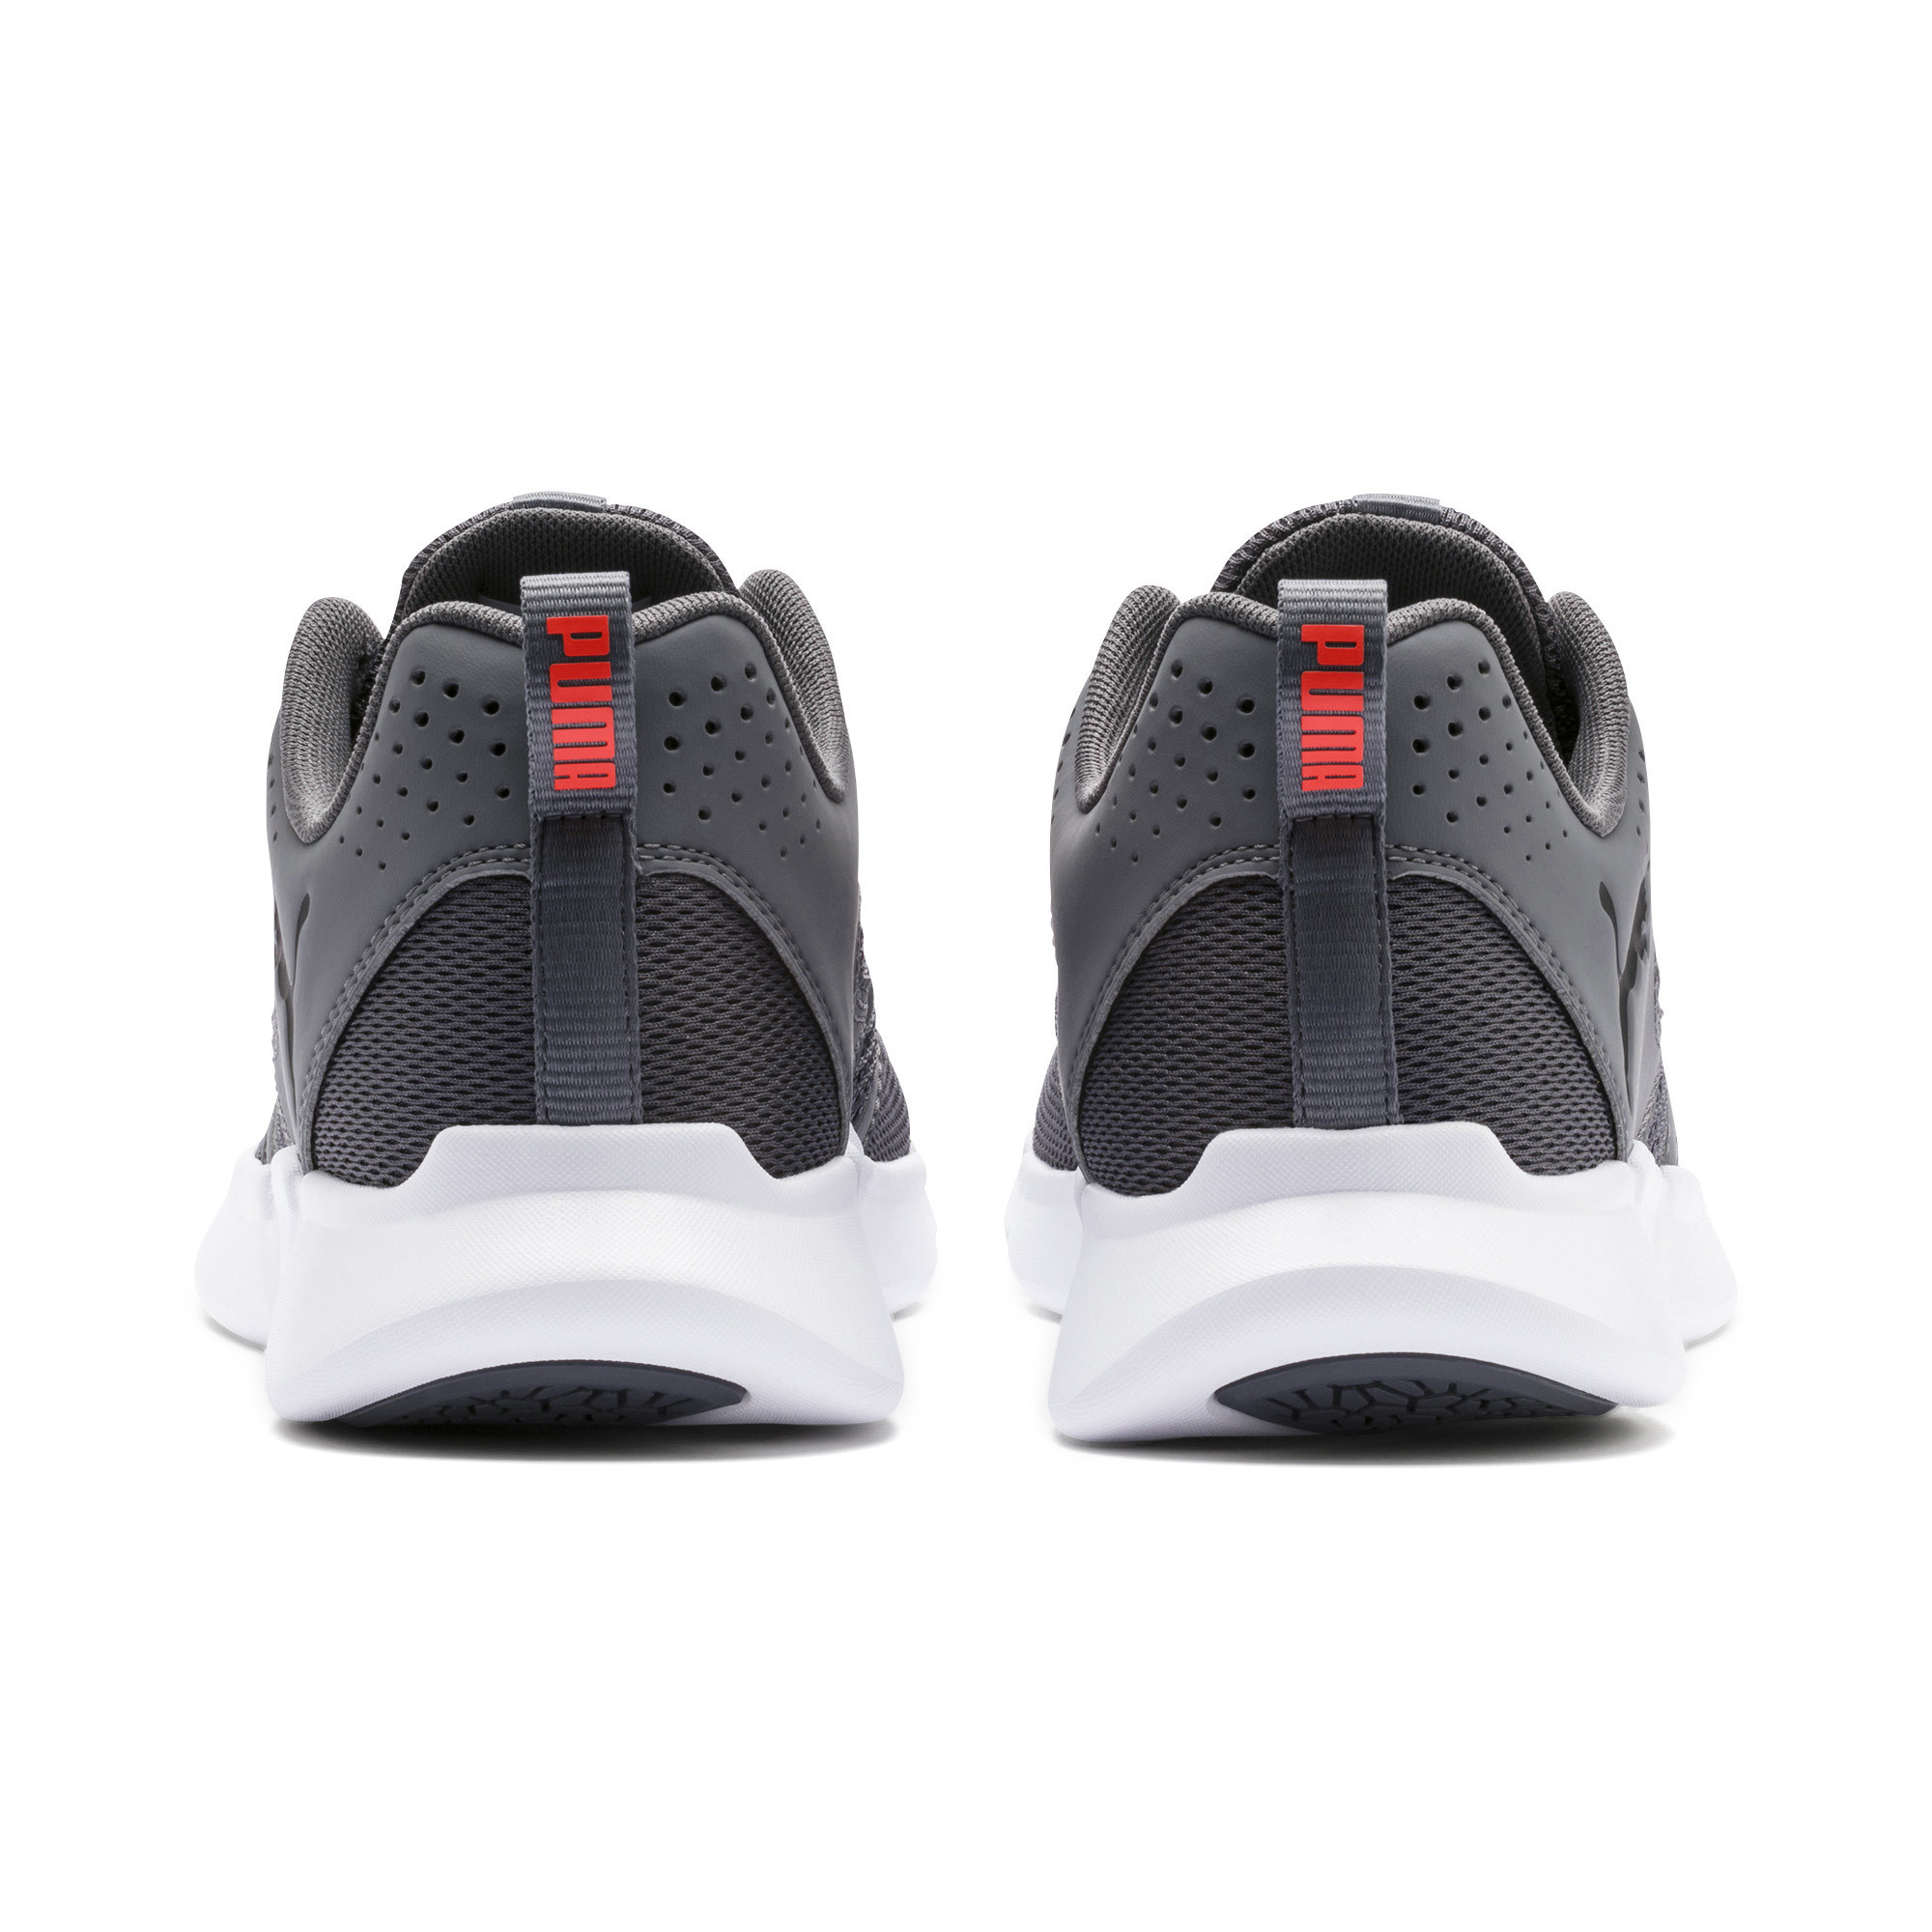 PUMA-INTERFLEX-Modern-Men-039-s-Sneakers-Unisex-Shoe-Running thumbnail 23